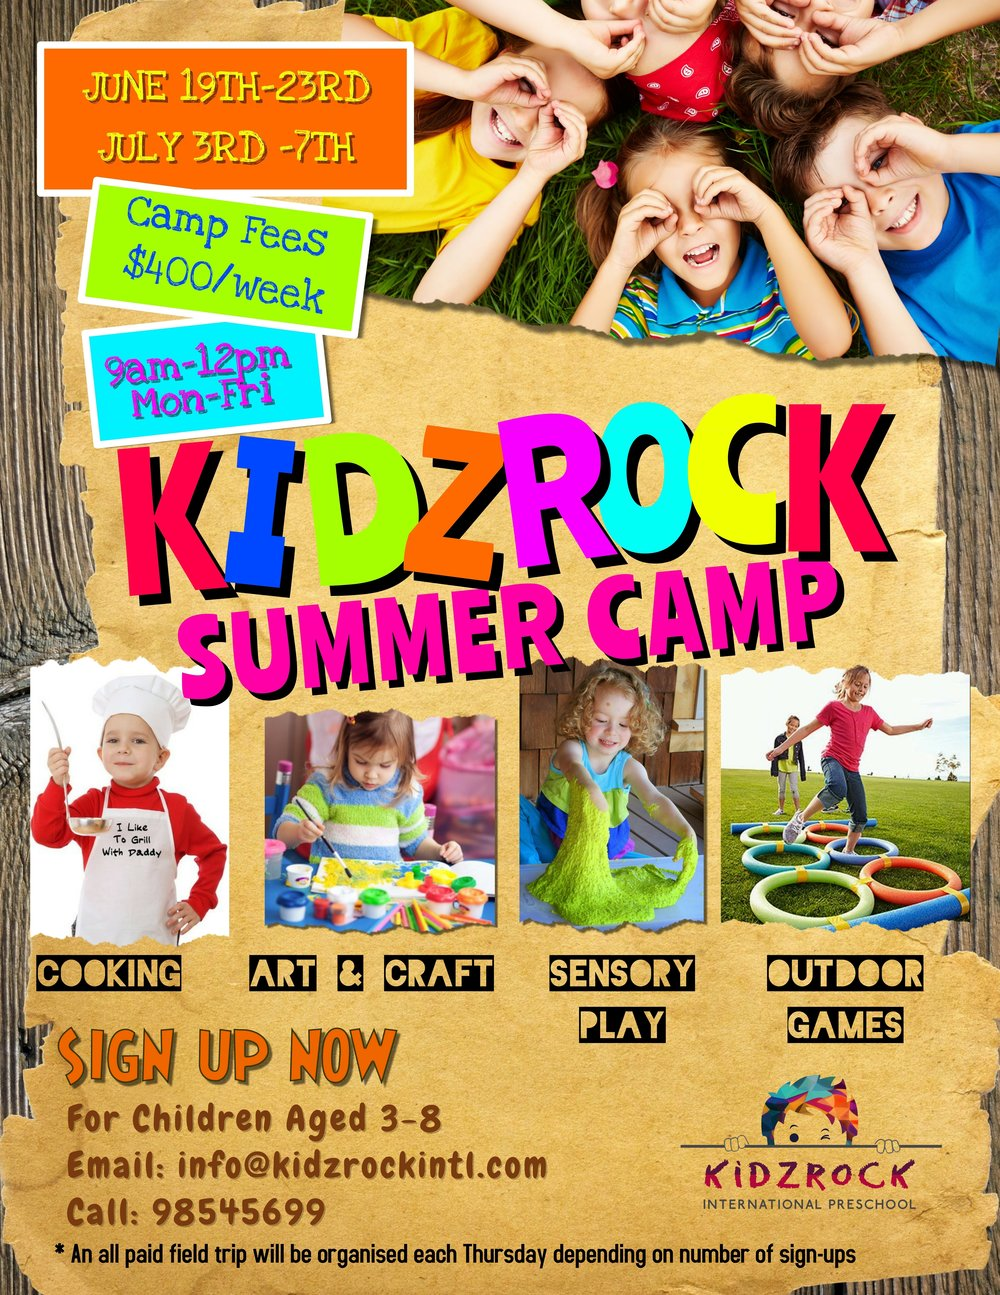 KidzRock Summer Camp.jpg